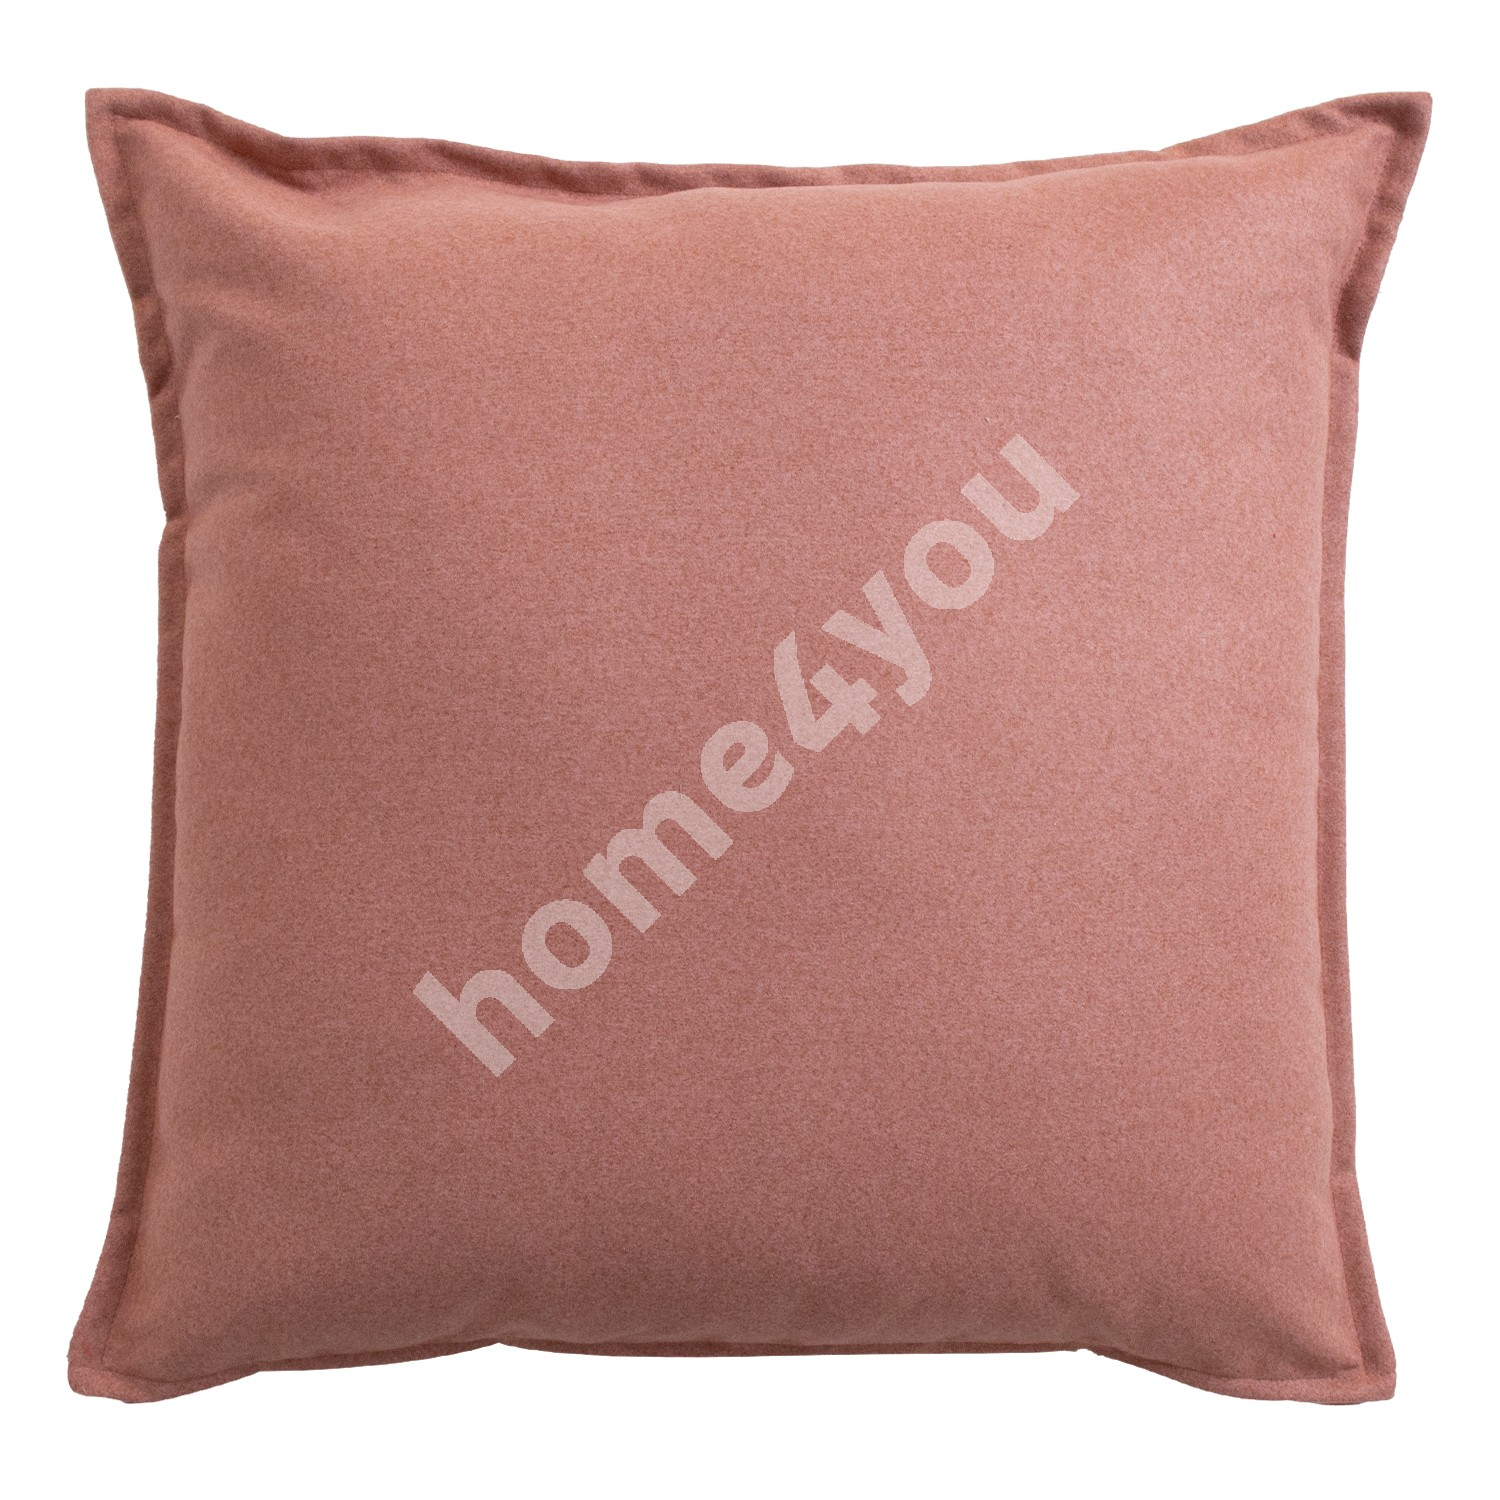 Pillow SEAT SOFT 65x65cm, old pink